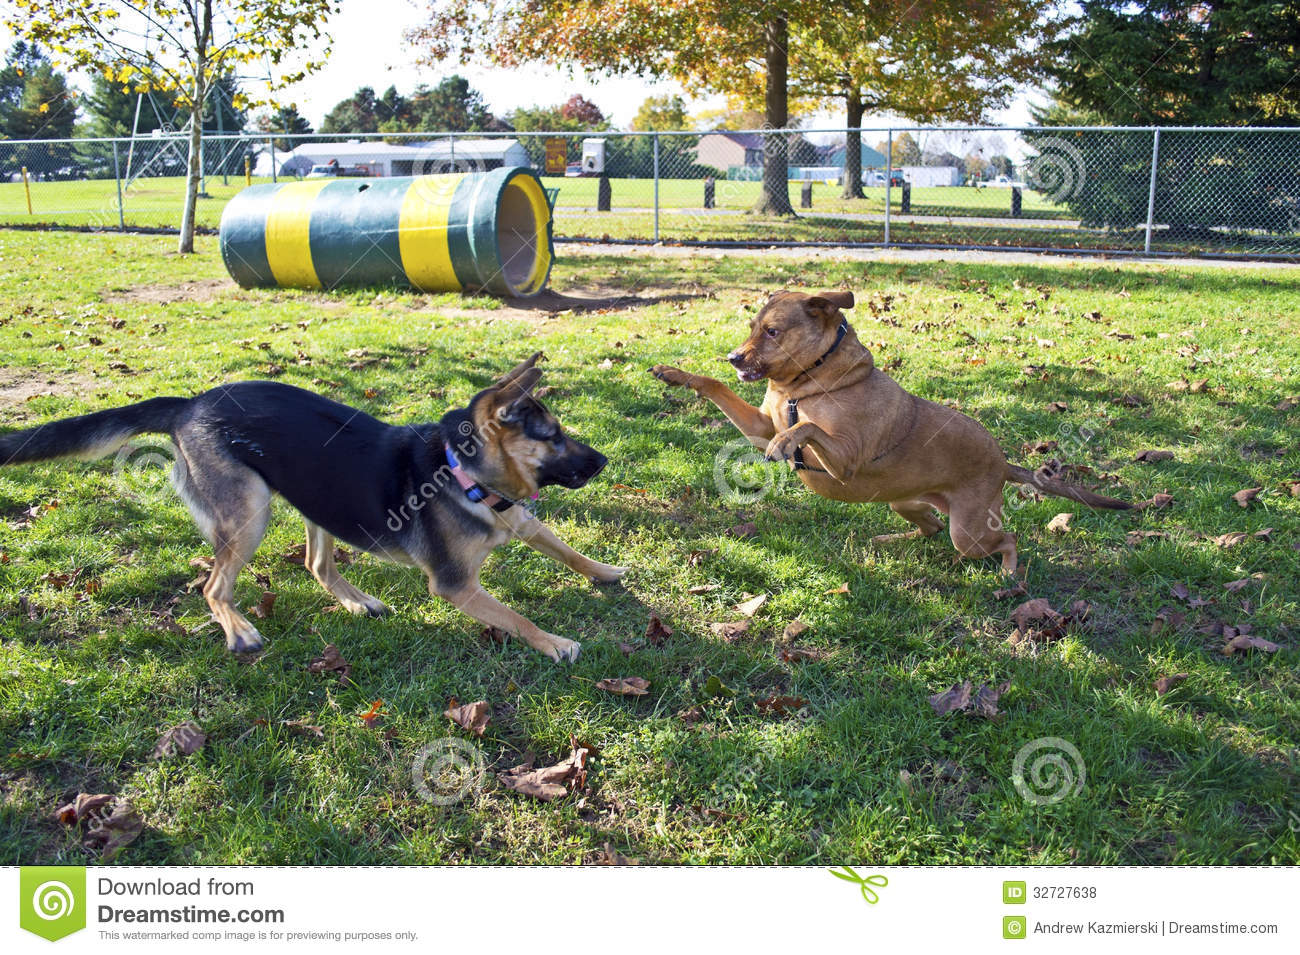 How to Start a Dog Park Business